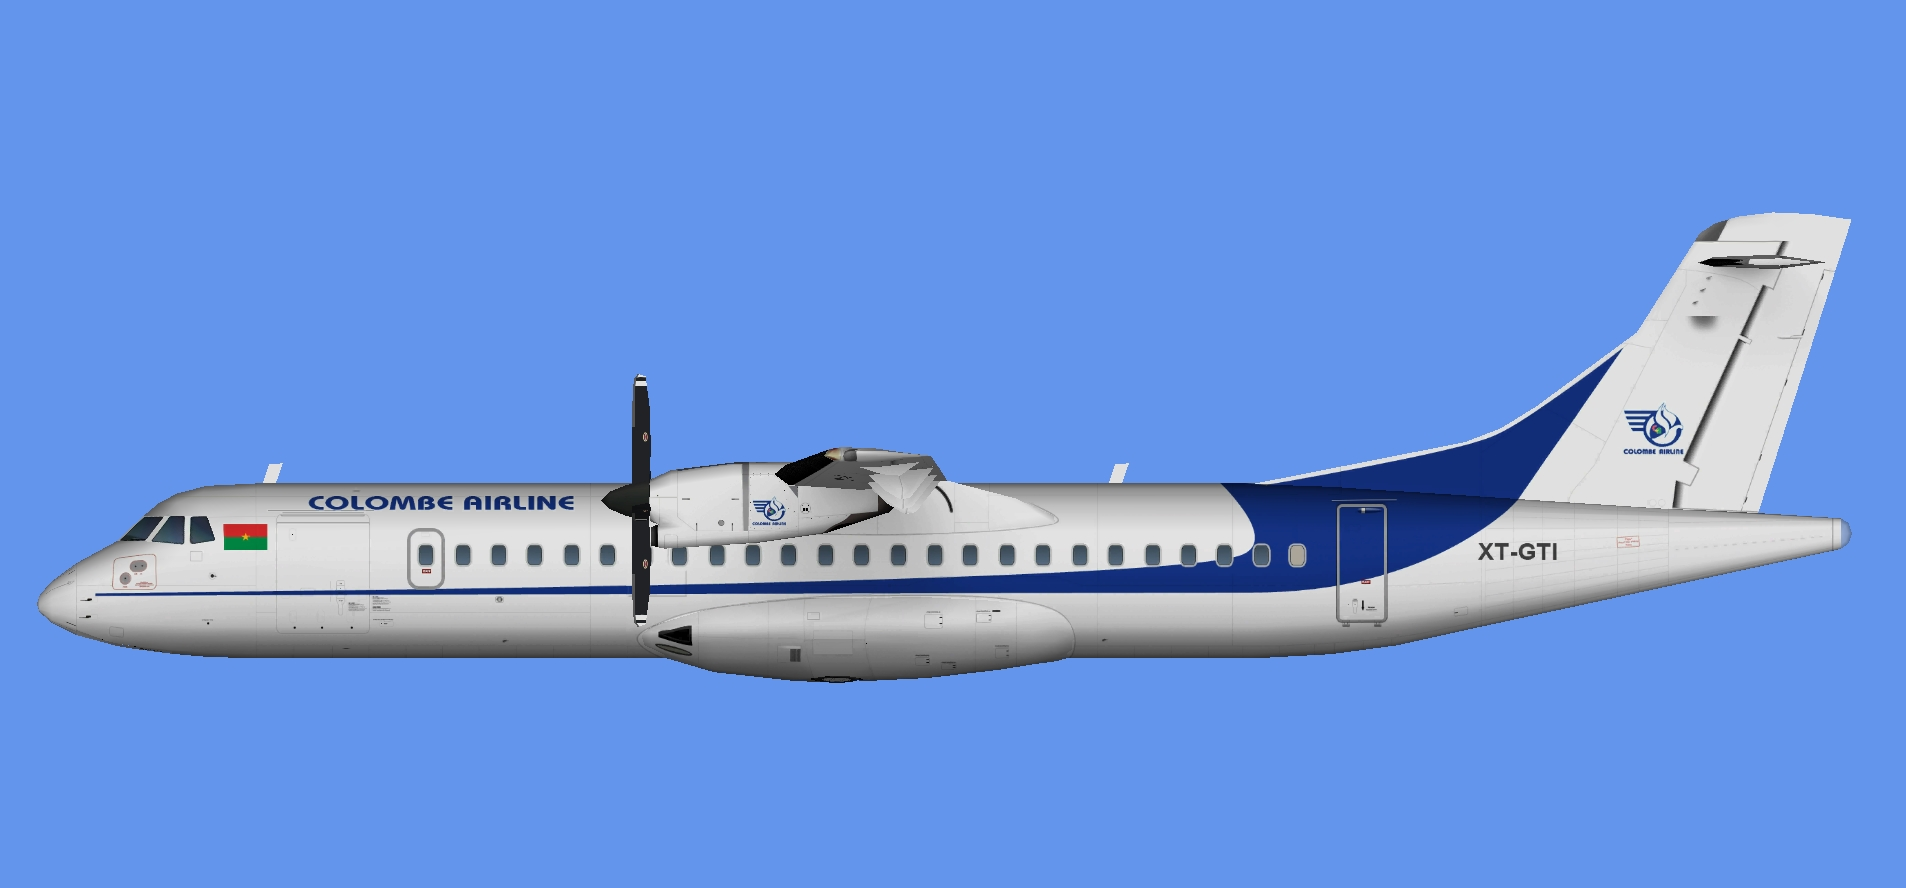 Colombe Airline ATR 72